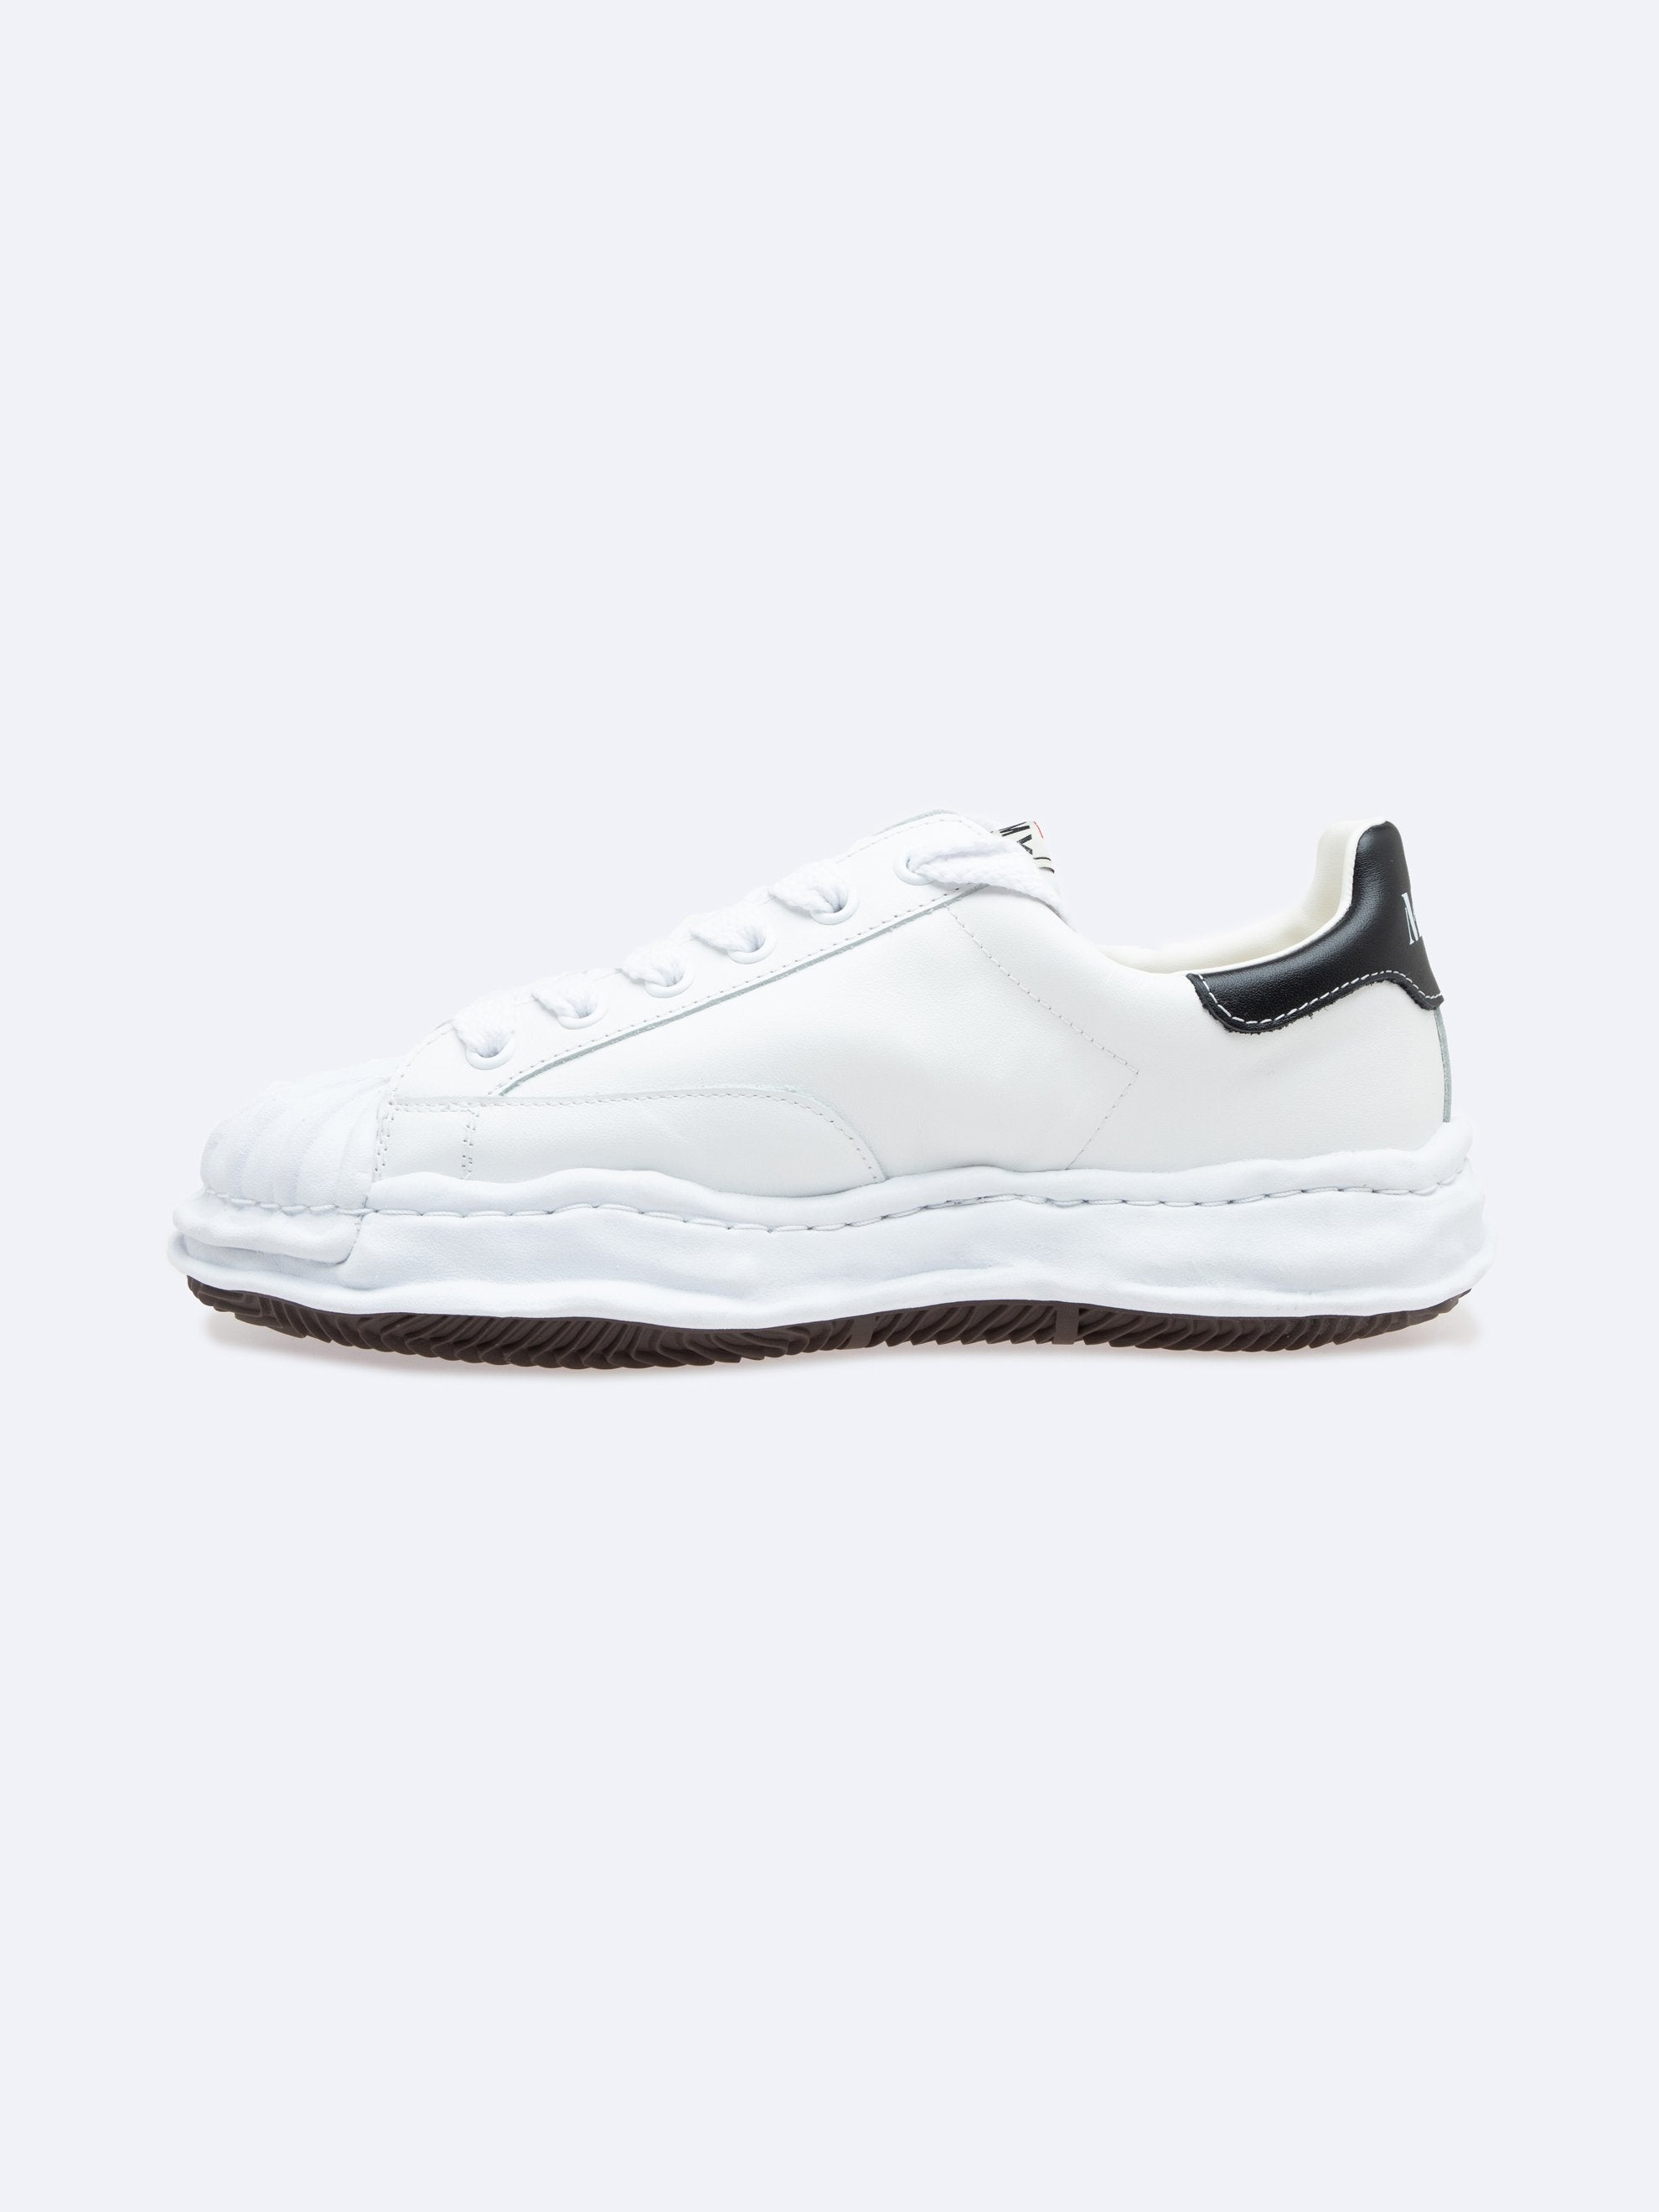 White Blakey Low Original Sole Leather Sneaker 2